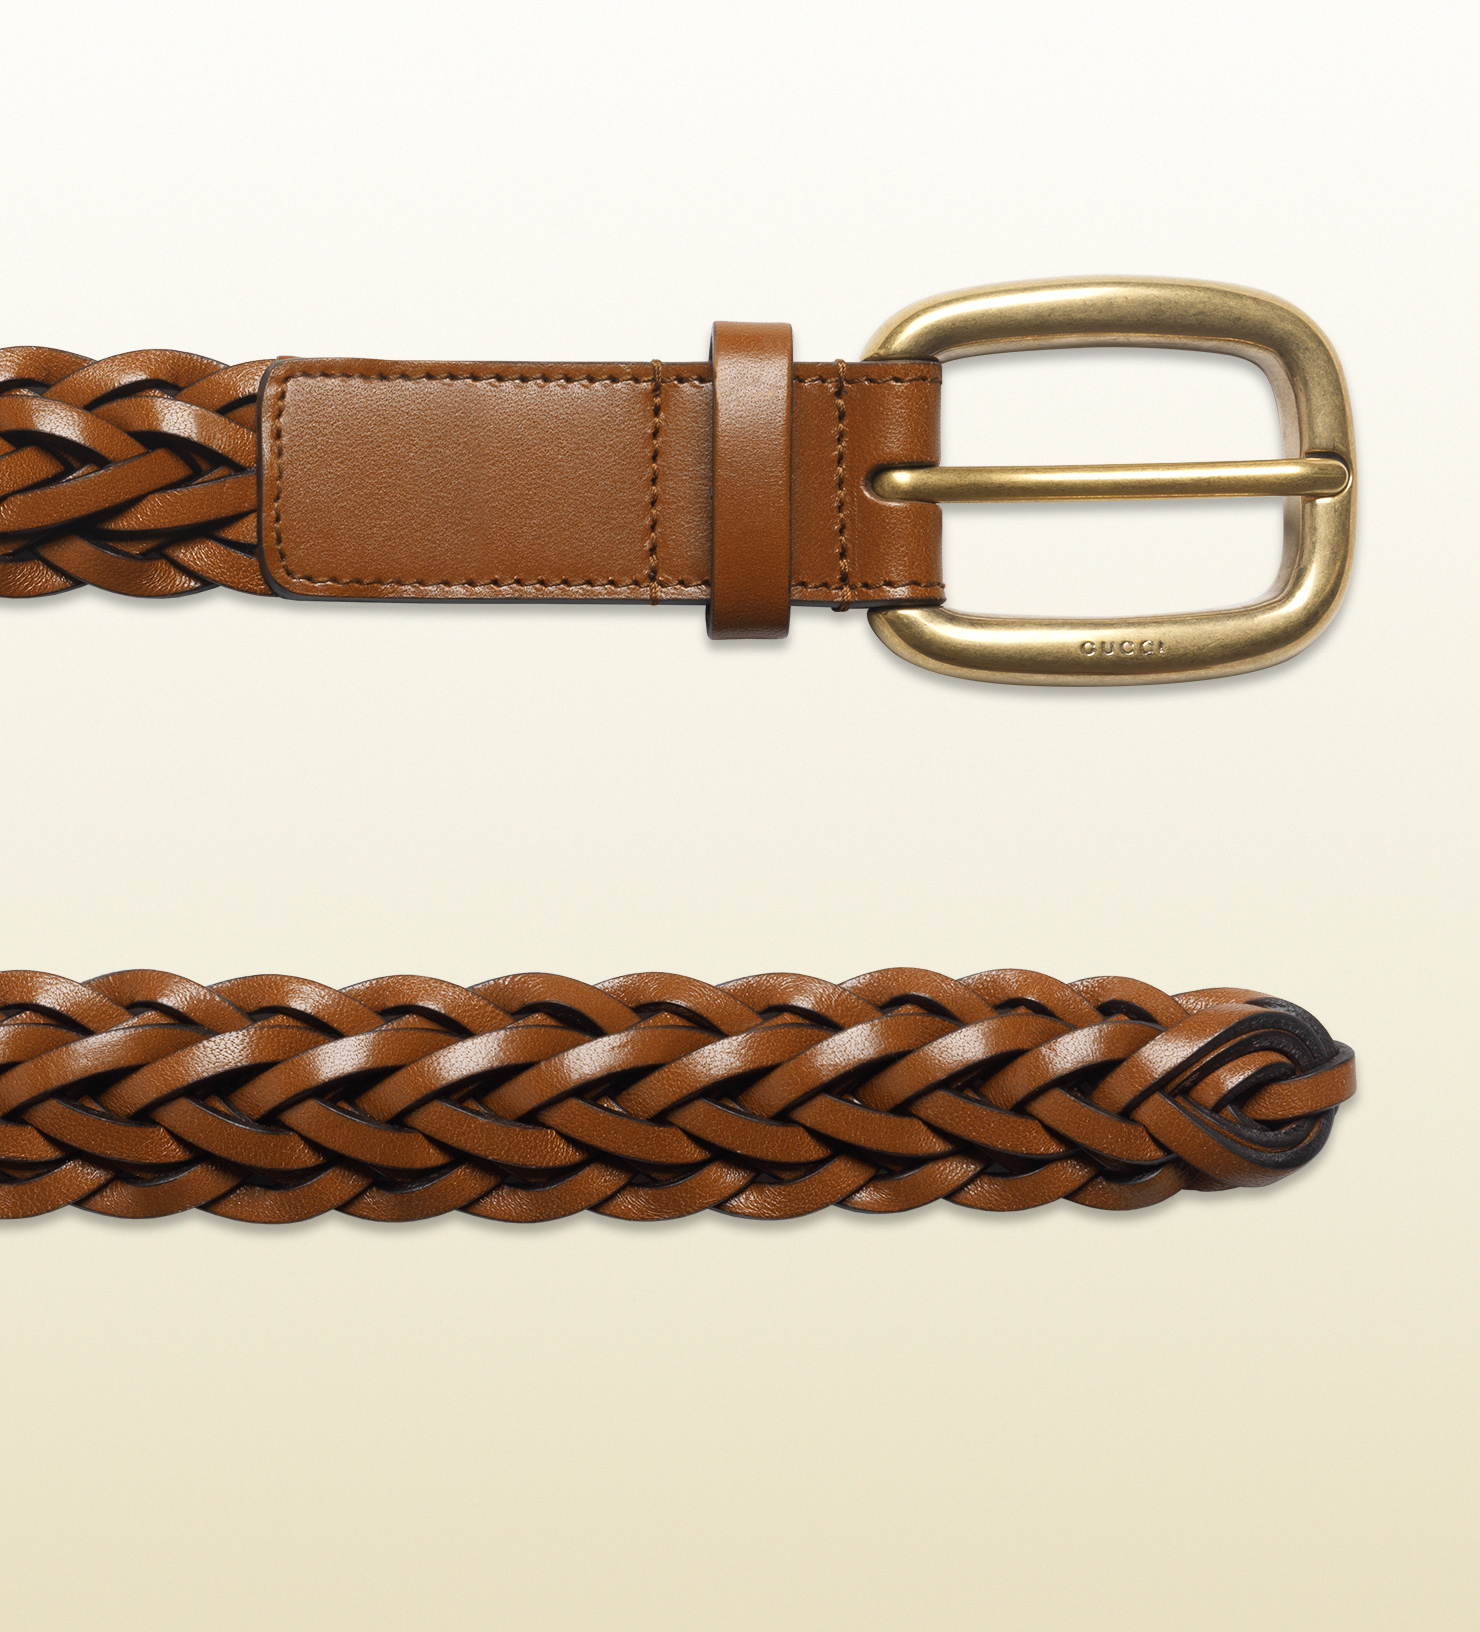 d60a7e82429 Lyst - Gucci Hand-braided Leather Belt in Brown